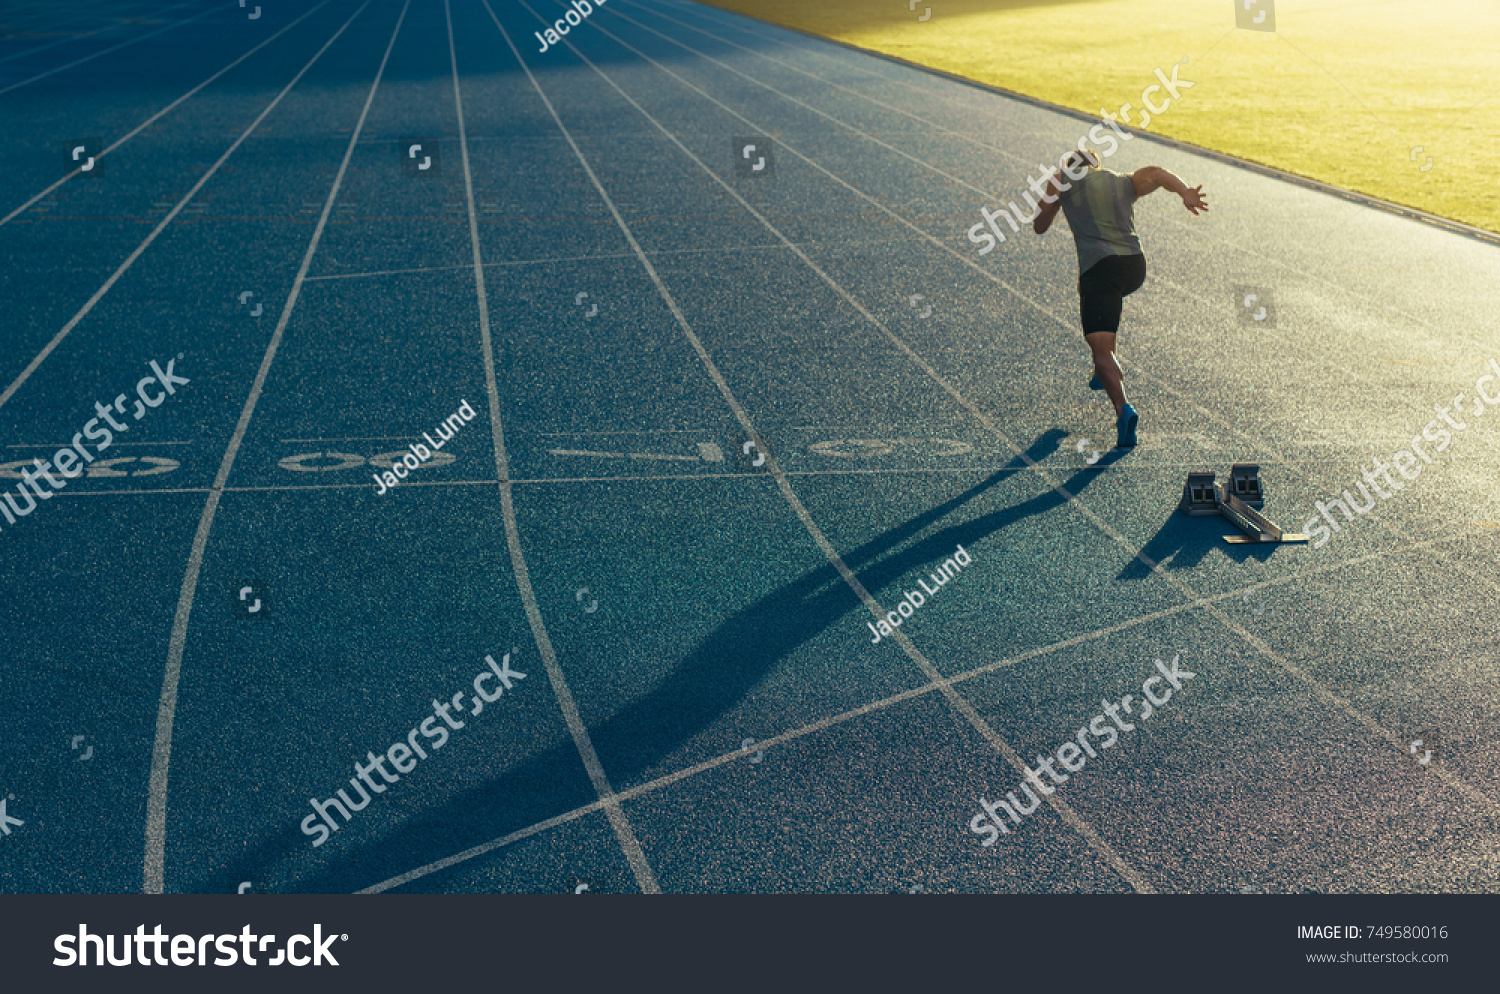 Athlete running on an all-weather running track alone. Runner sprinting on a blue rubberized running track starting off using a starting block. #749580016